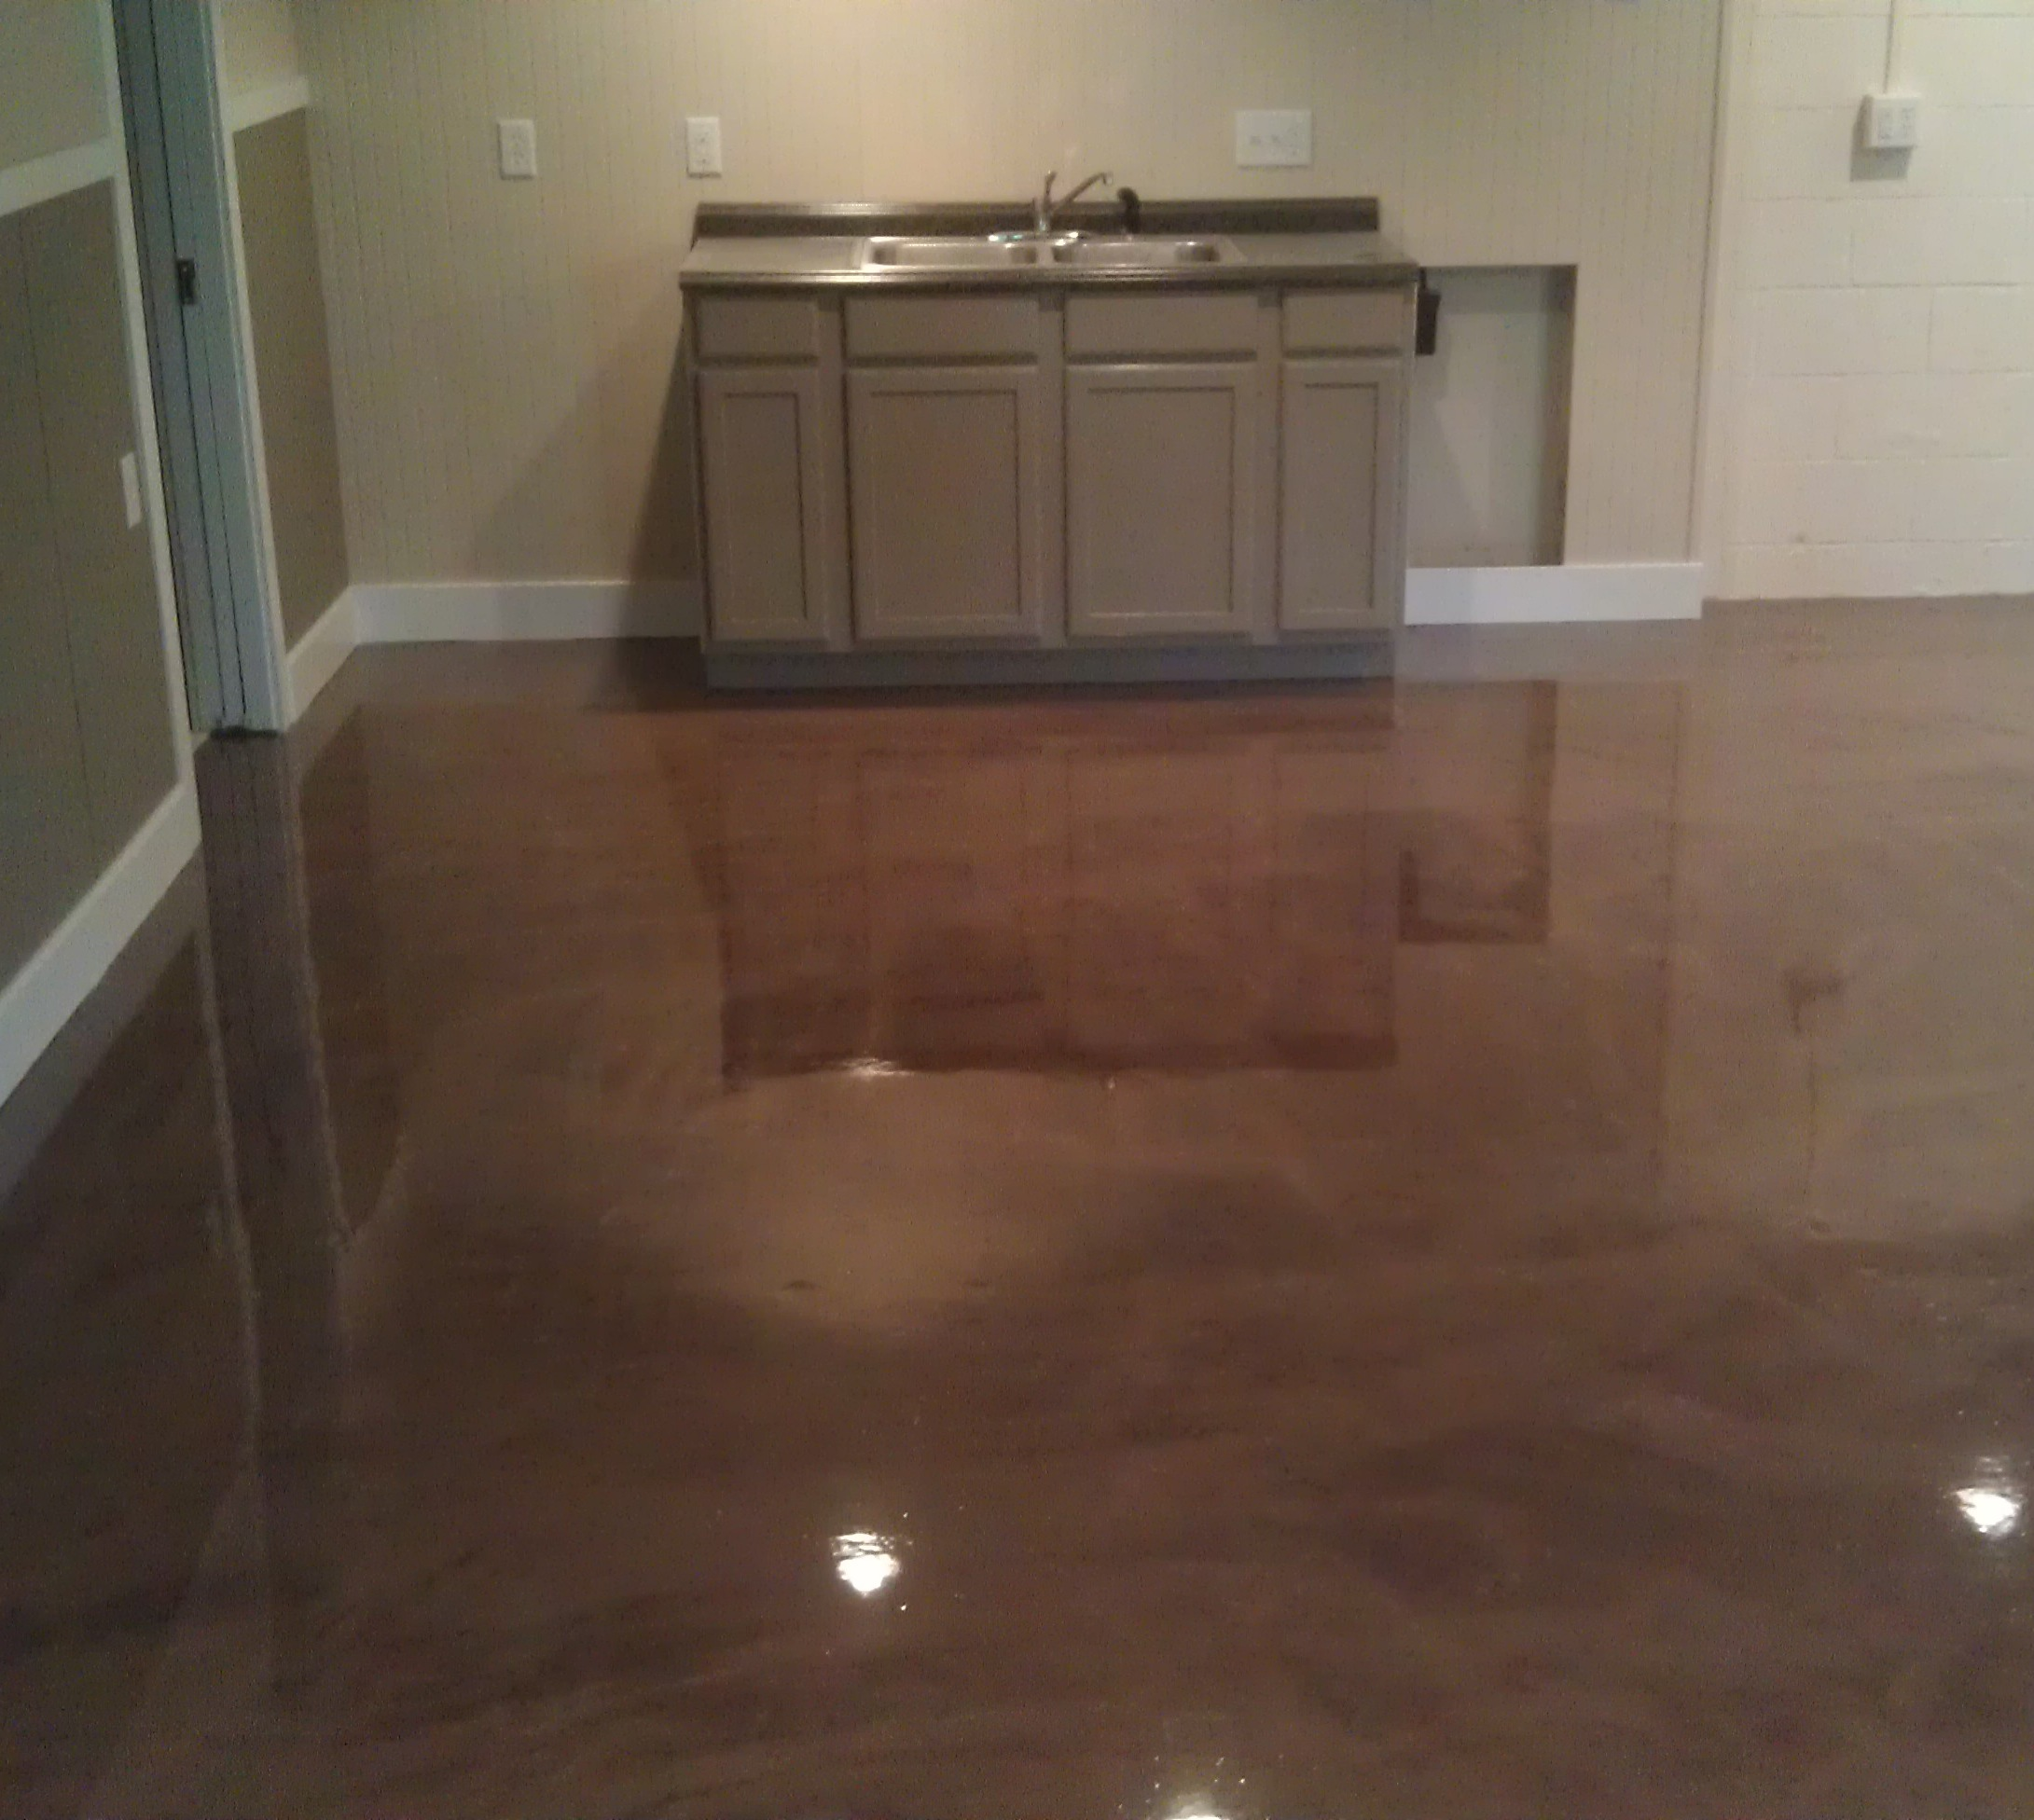 Laminate Floor In Basement On Concrete: What's New In Concrete Flooring?